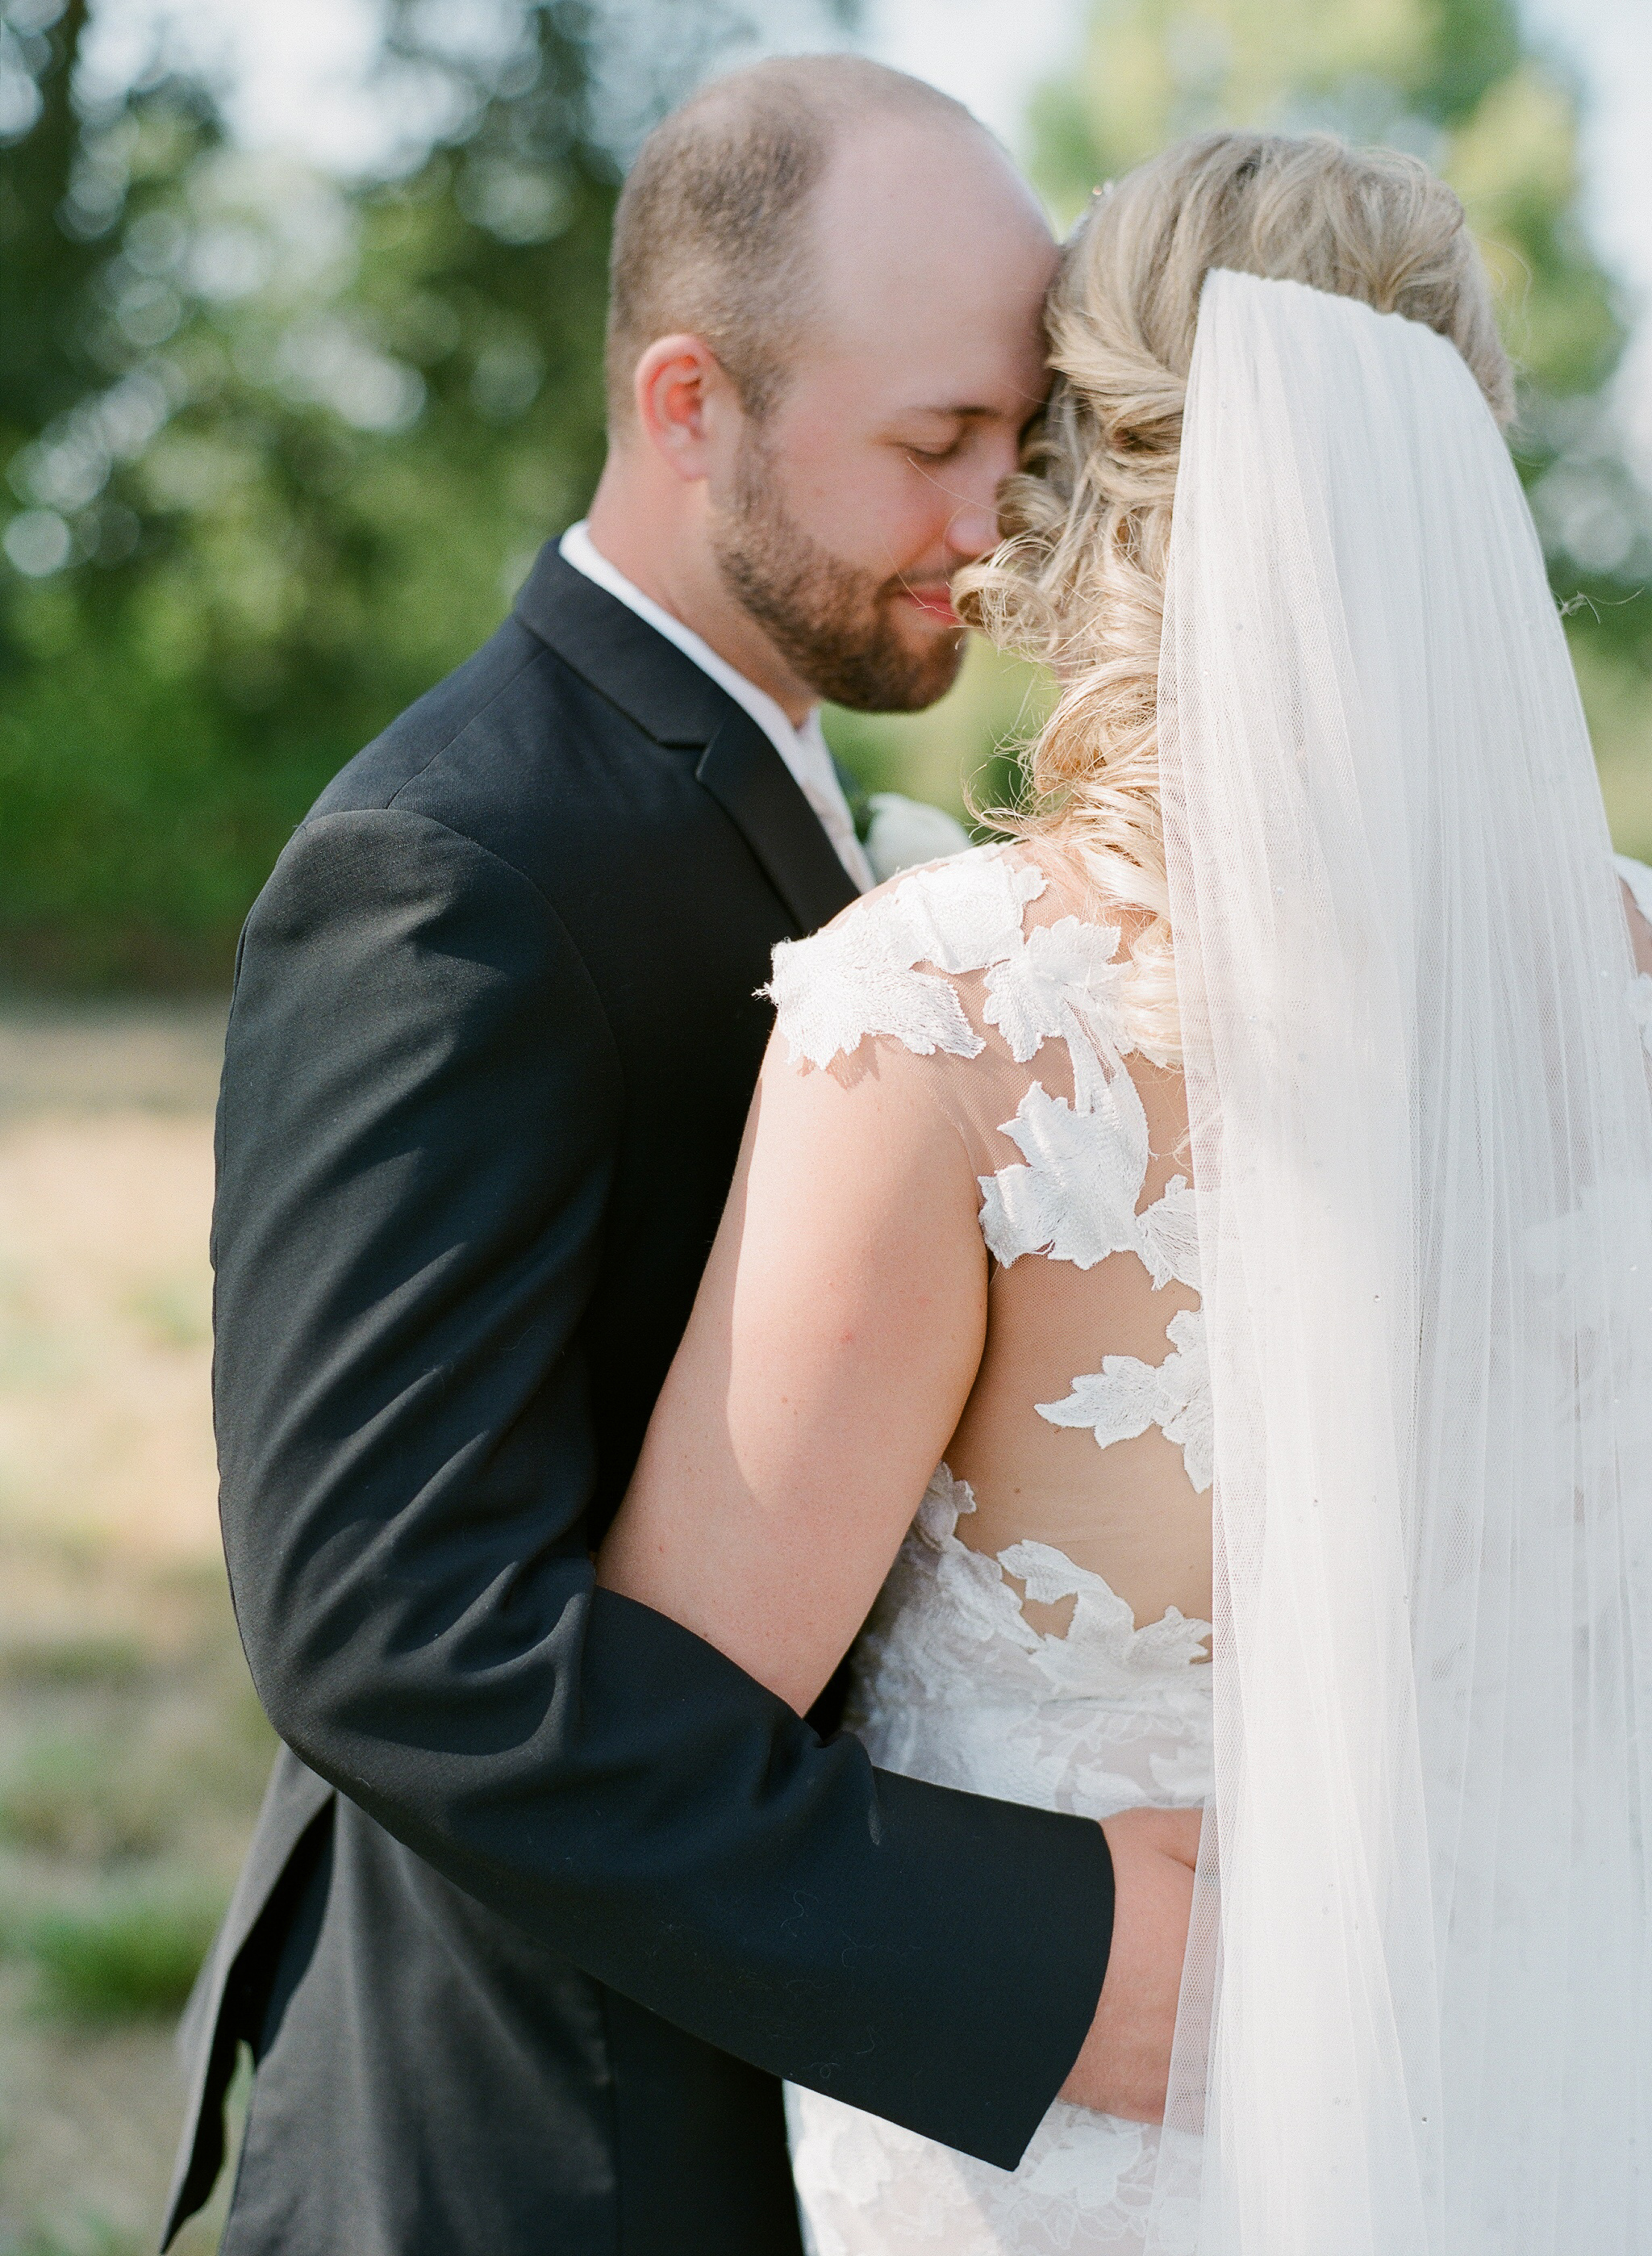 Bridalbliss.com | Portland Wedding | Oregon Event Planning and Design | Simply Splendid Photography